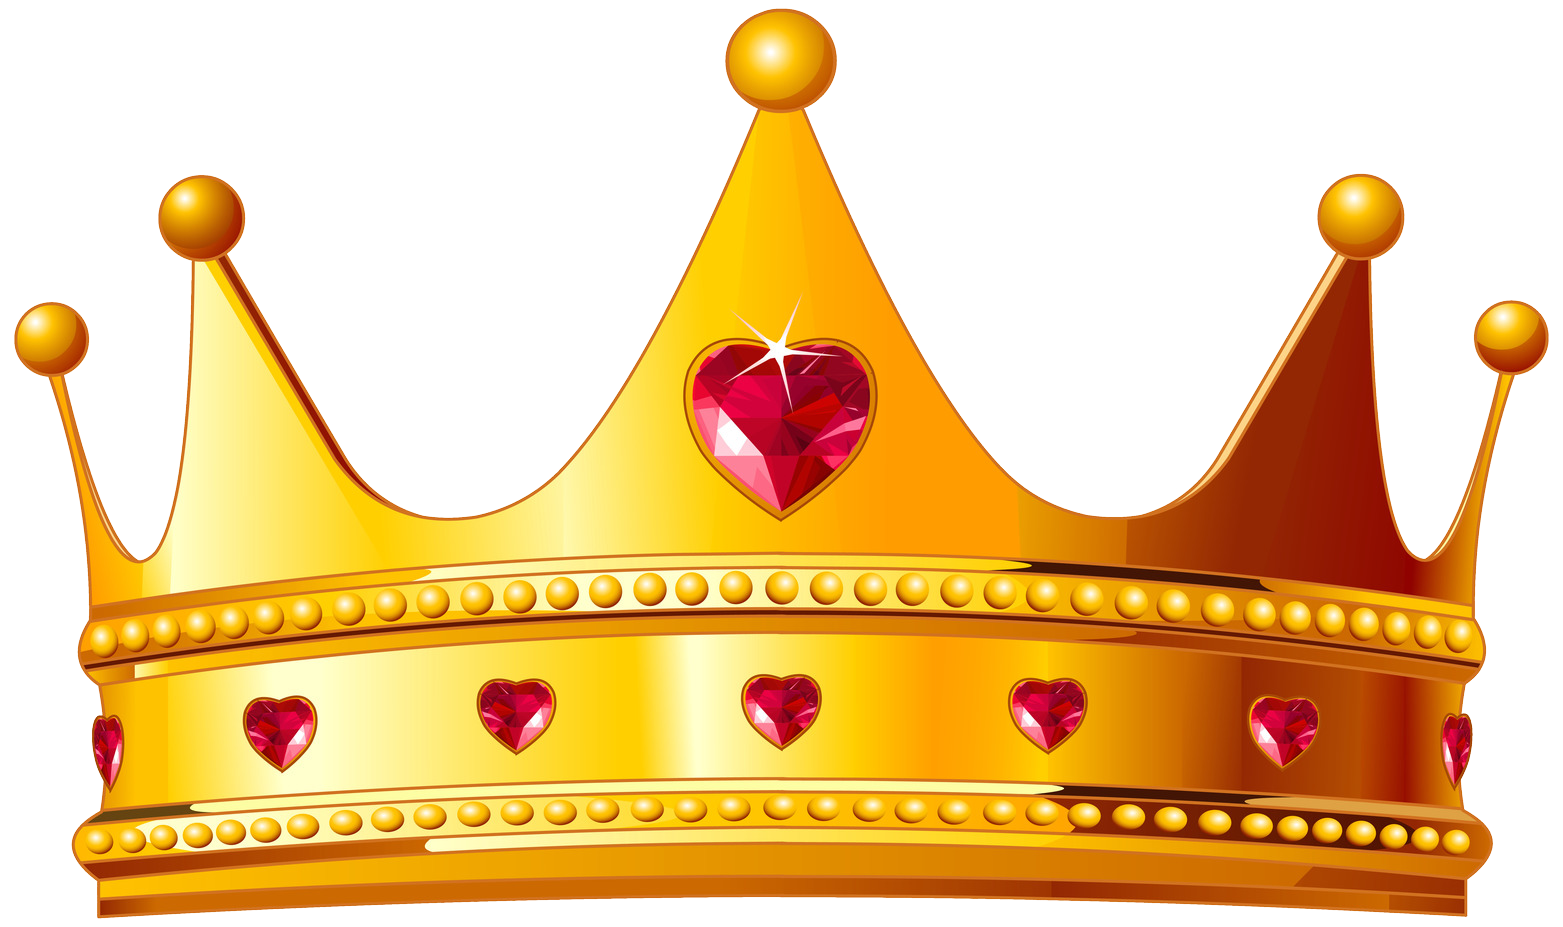 Crown clipart with transparent background graphic freeuse library Full Hd Crown Png Transparent Background graphic freeuse library